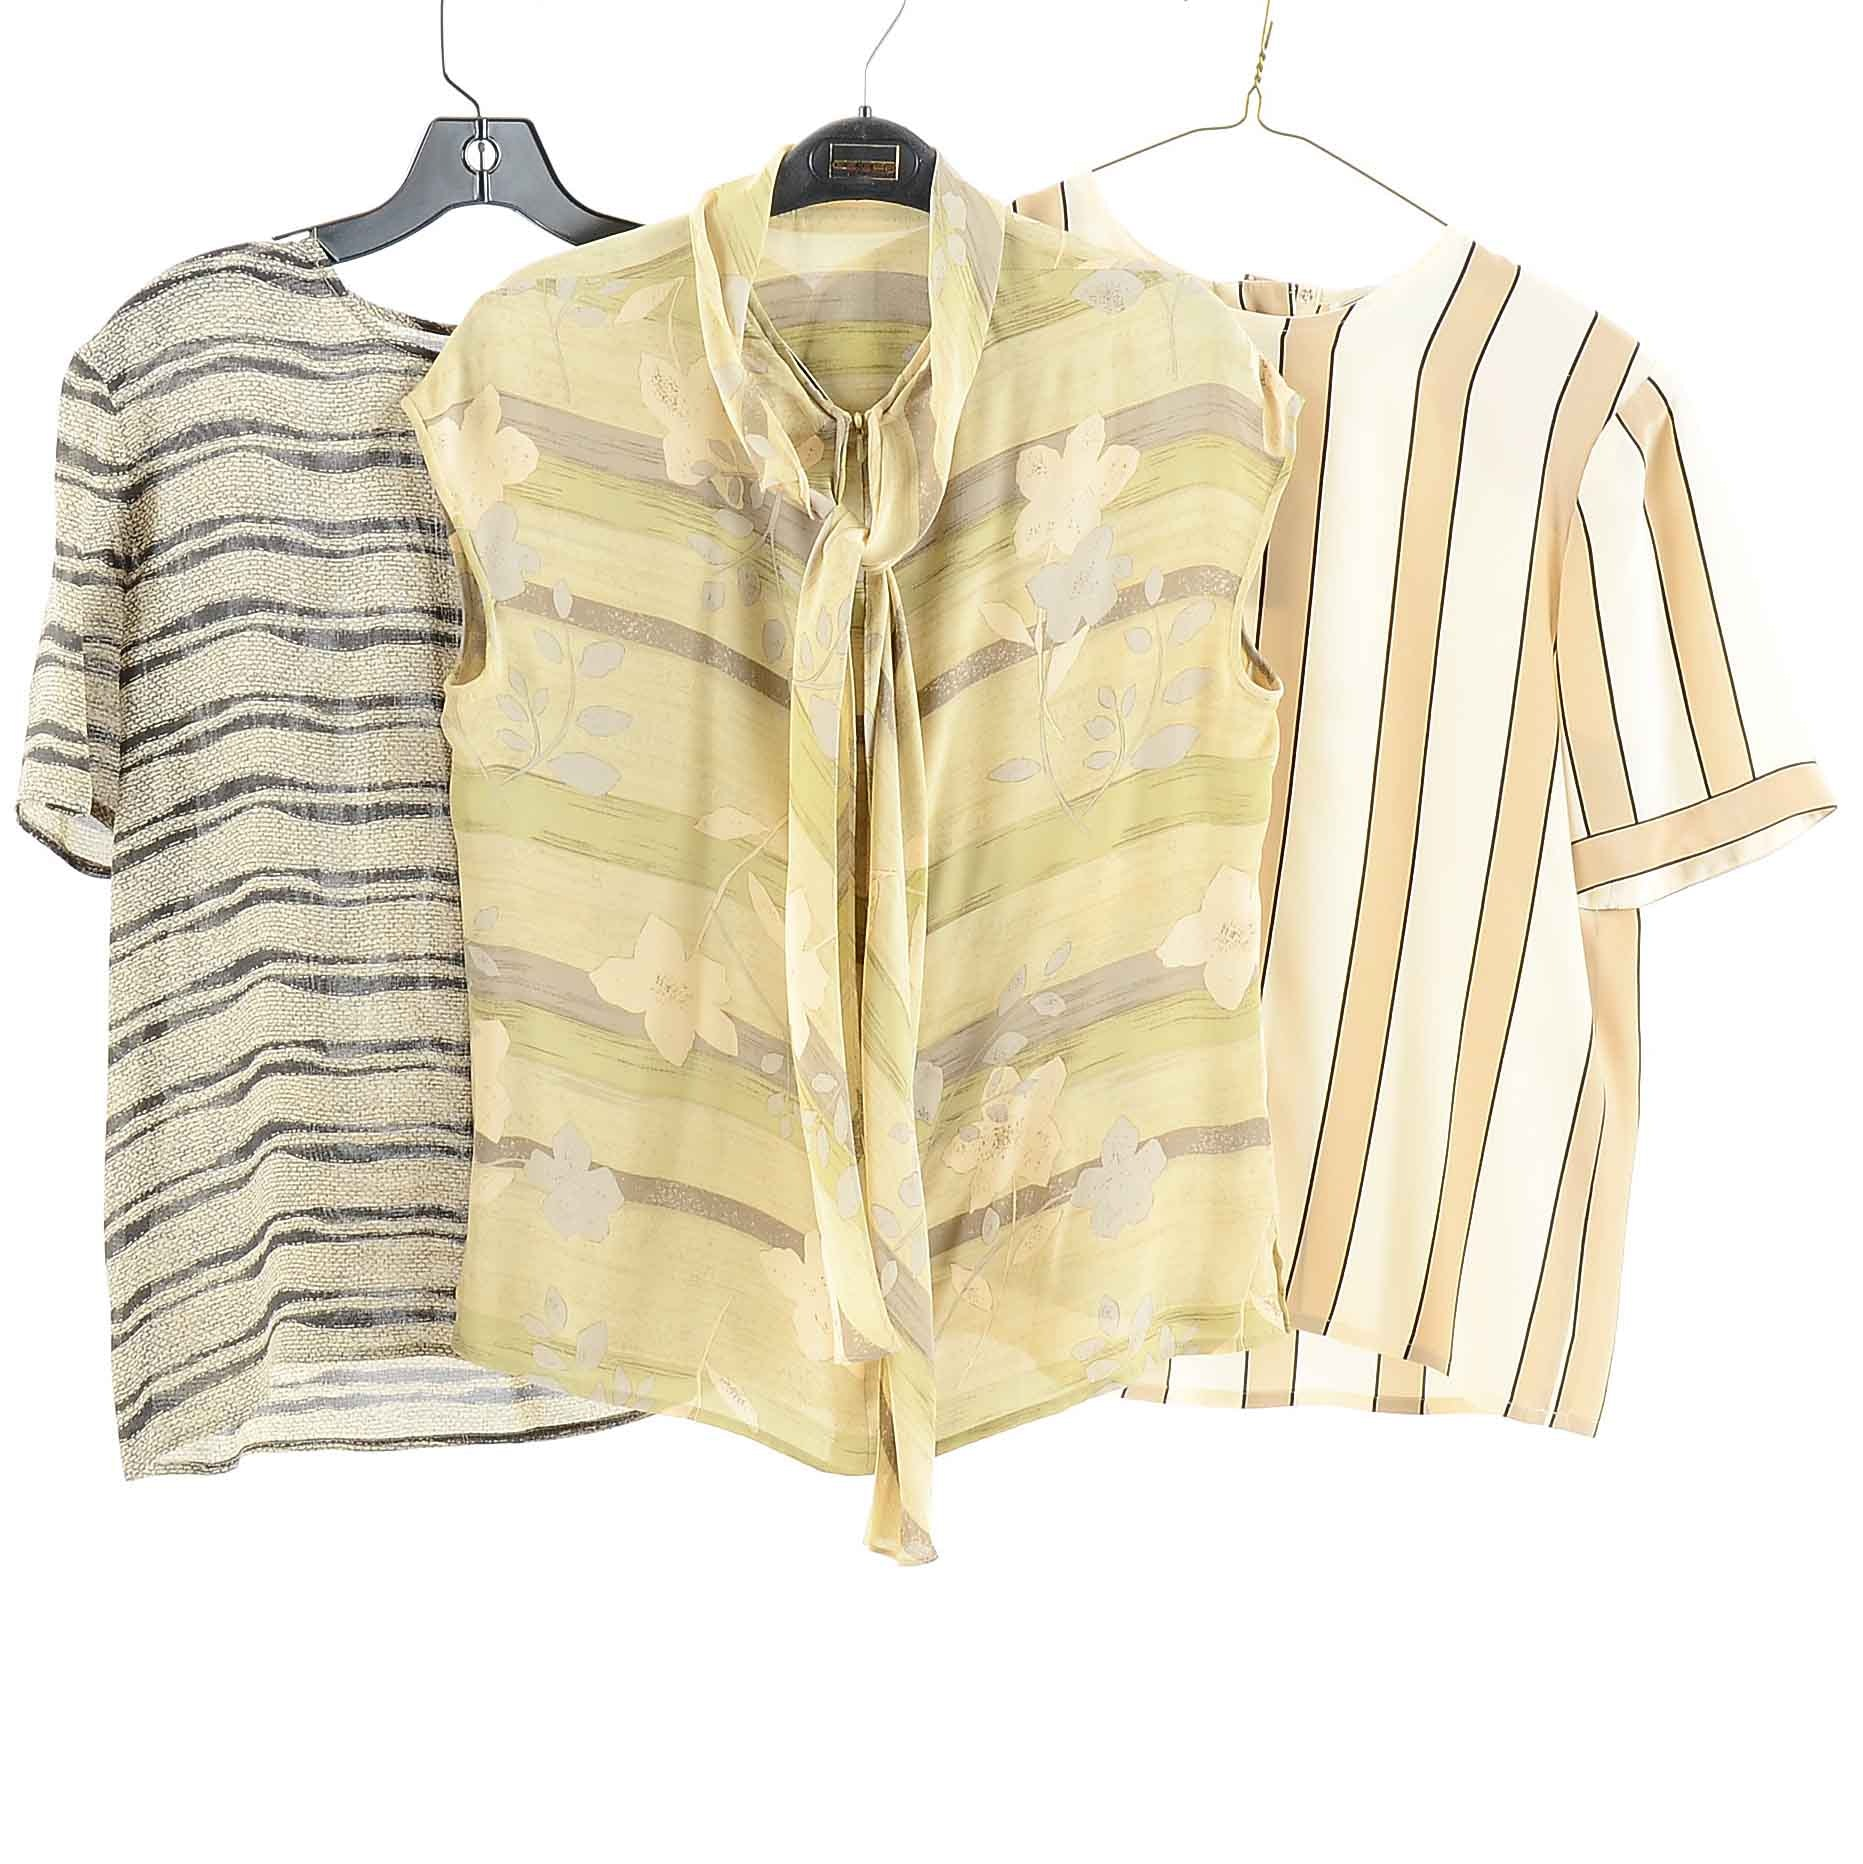 Vintage Neutral Silk Blouses by Carlisle